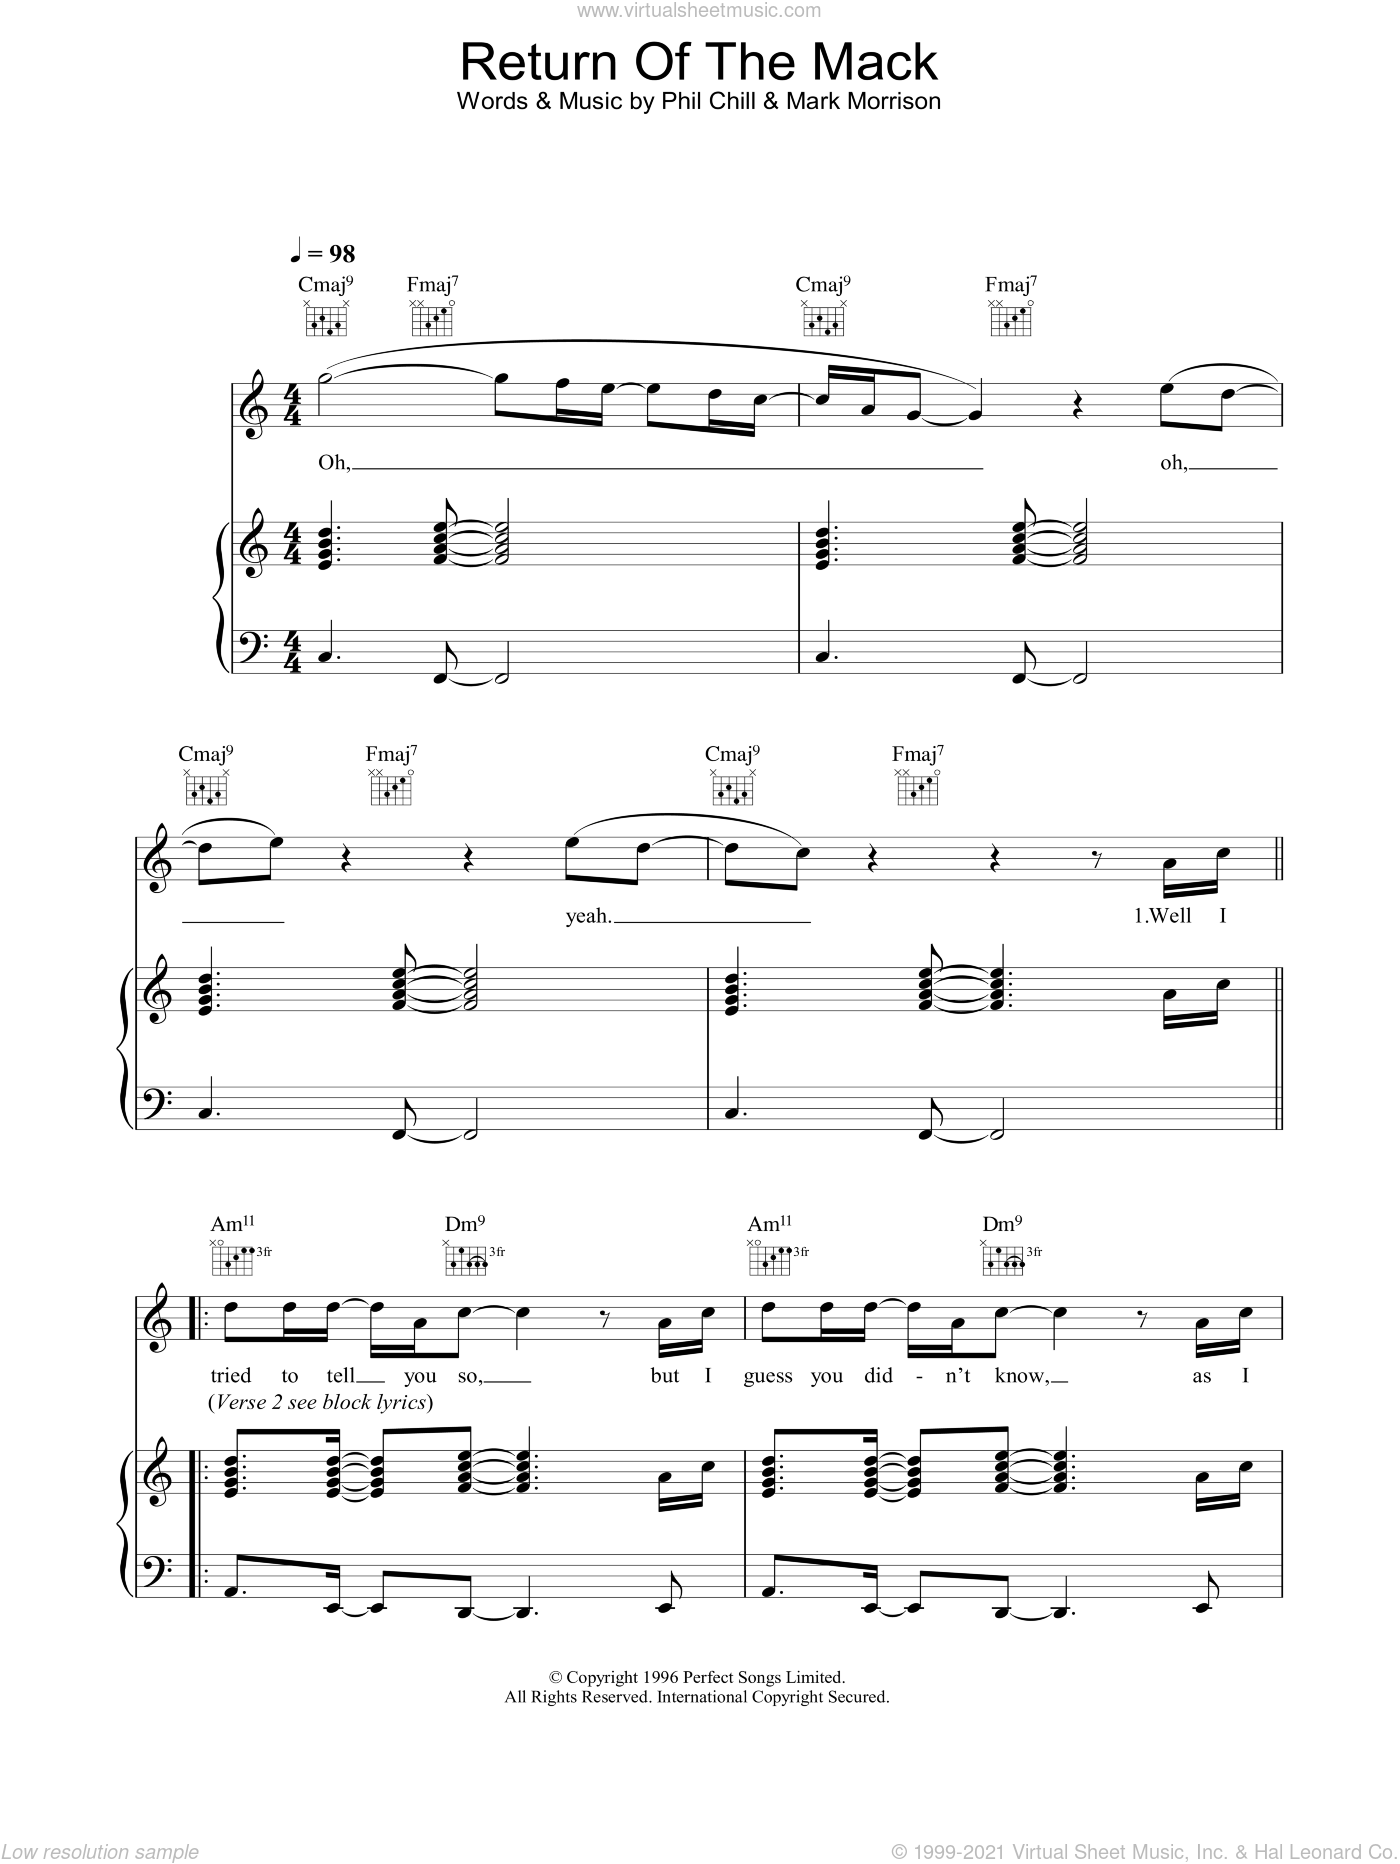 Return Of The Mack sheet music for voice, piano or guitar by Phil Chill. Score Image Preview.